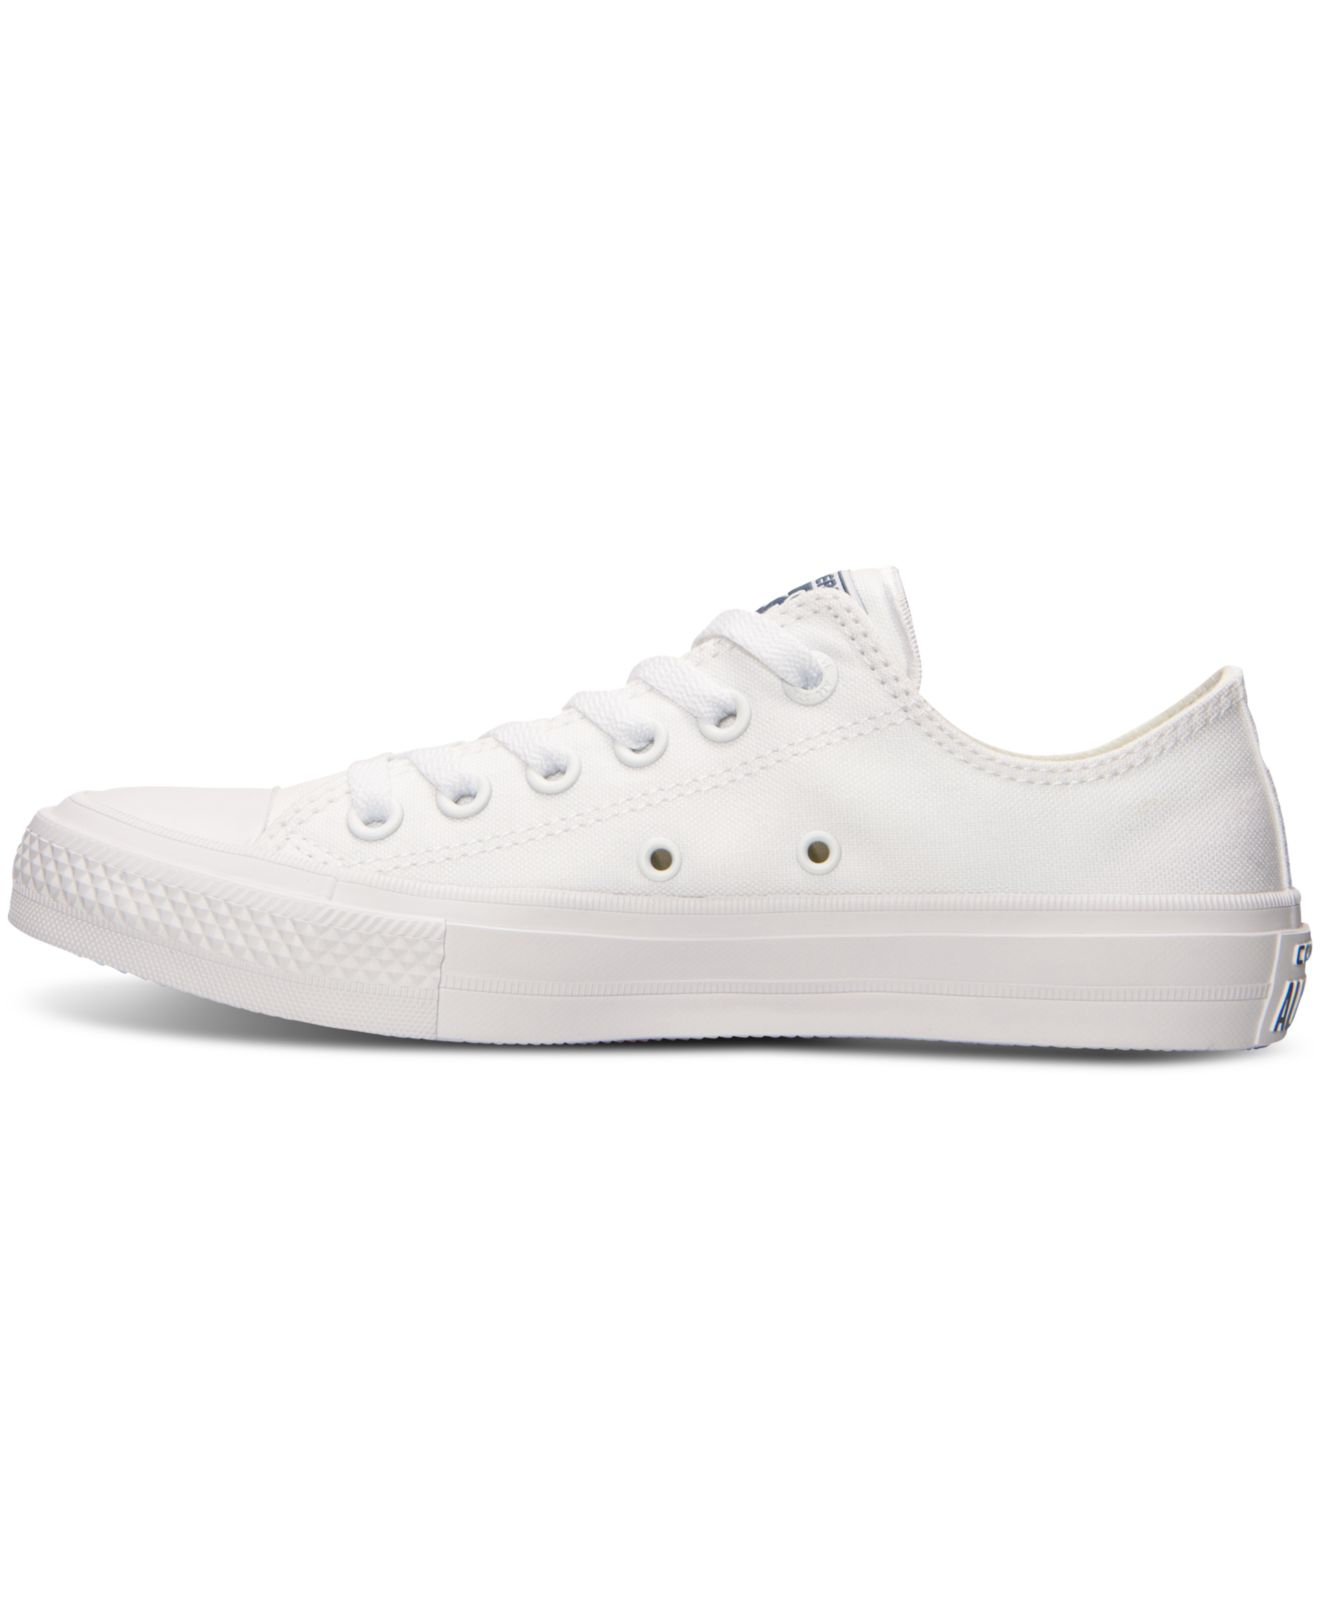 968787eba14 Lyst - Converse Women s Chuck Taylor All Star Ii Ox Casual Sneakers ...